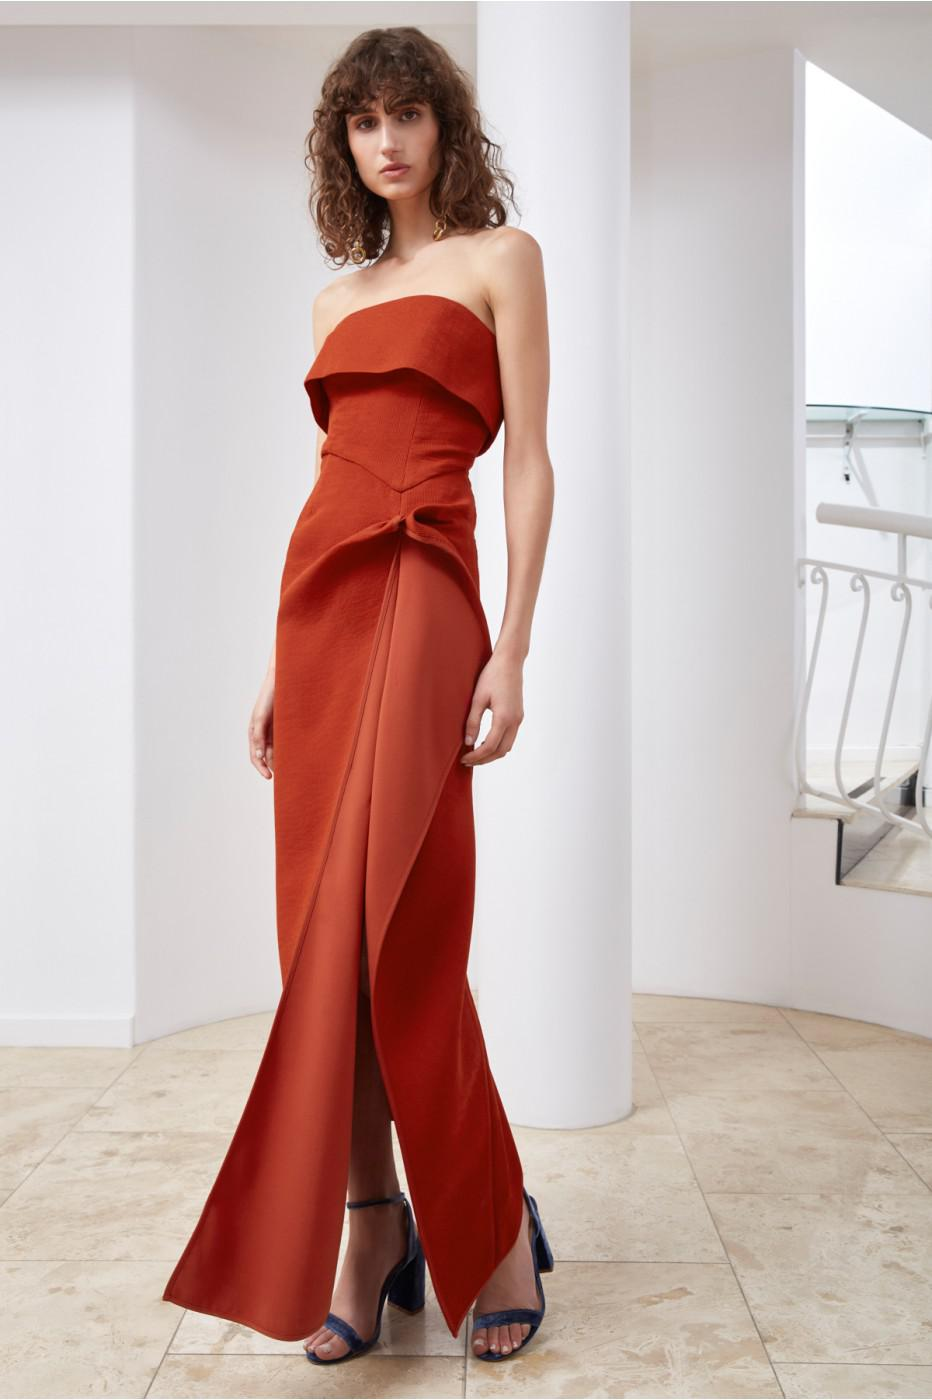 3af35cb46fb C meo Collective Fluidity Maxi Dress in Red - Lyst